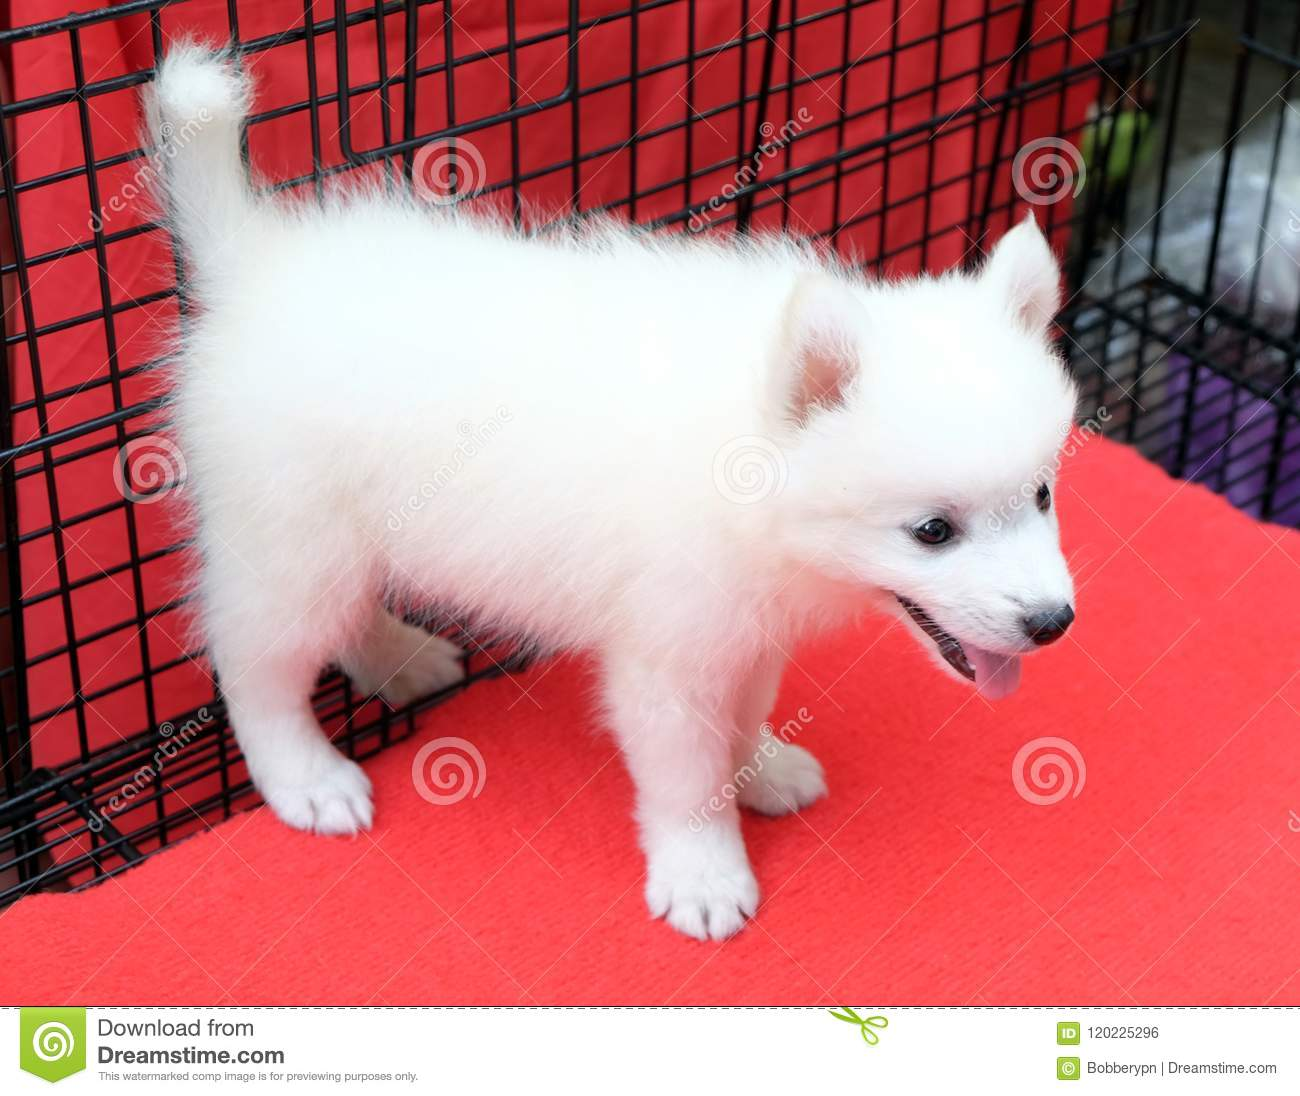 Little spitz for sell standing in dog cage.